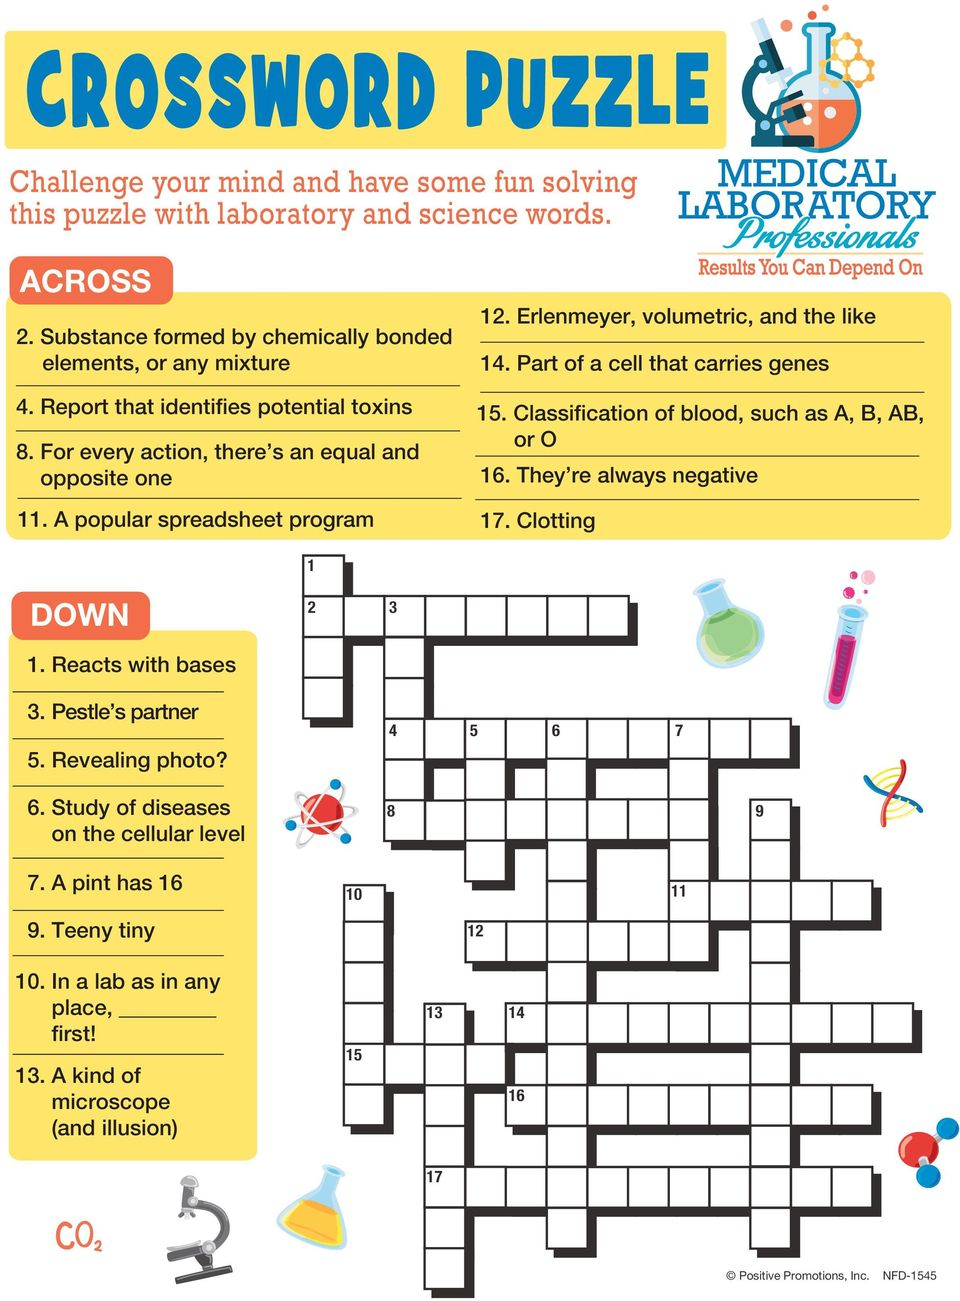 WORD SEARCH PUZZLE  Find and circle the words from the WORD LIST